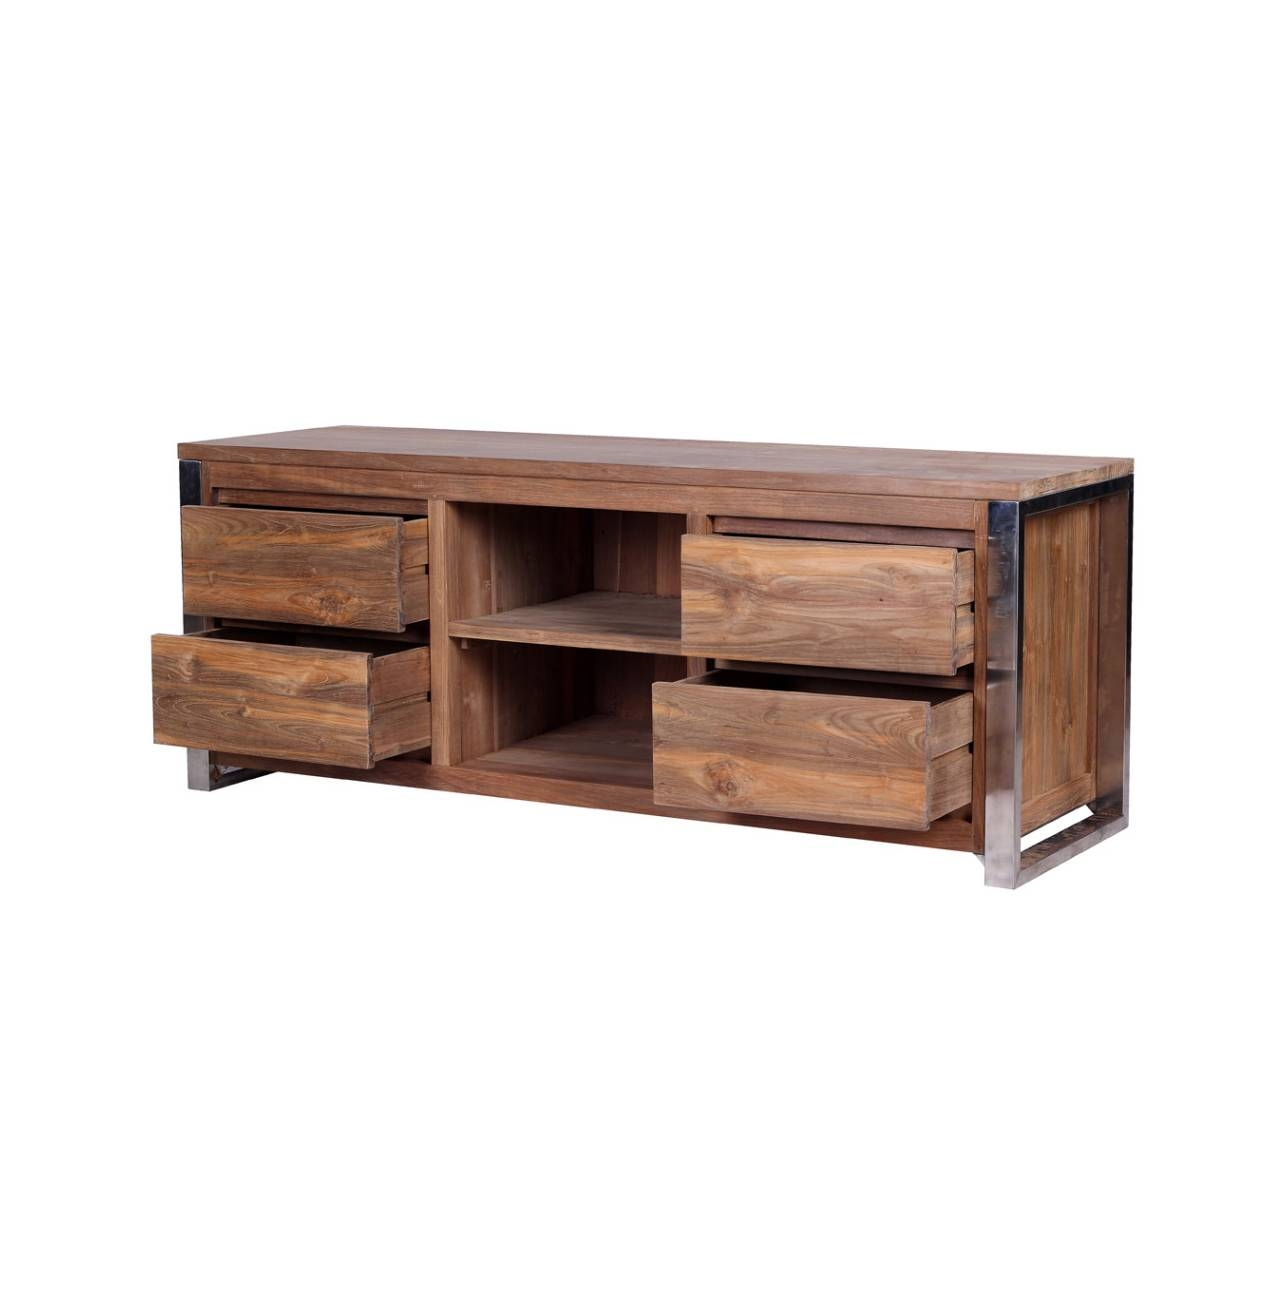 Rarem Reclaimed Wood Tv Stand - Reclaimed Teak And Stainless Steel regarding Recycled Wood Tv Stands (Image 5 of 15)